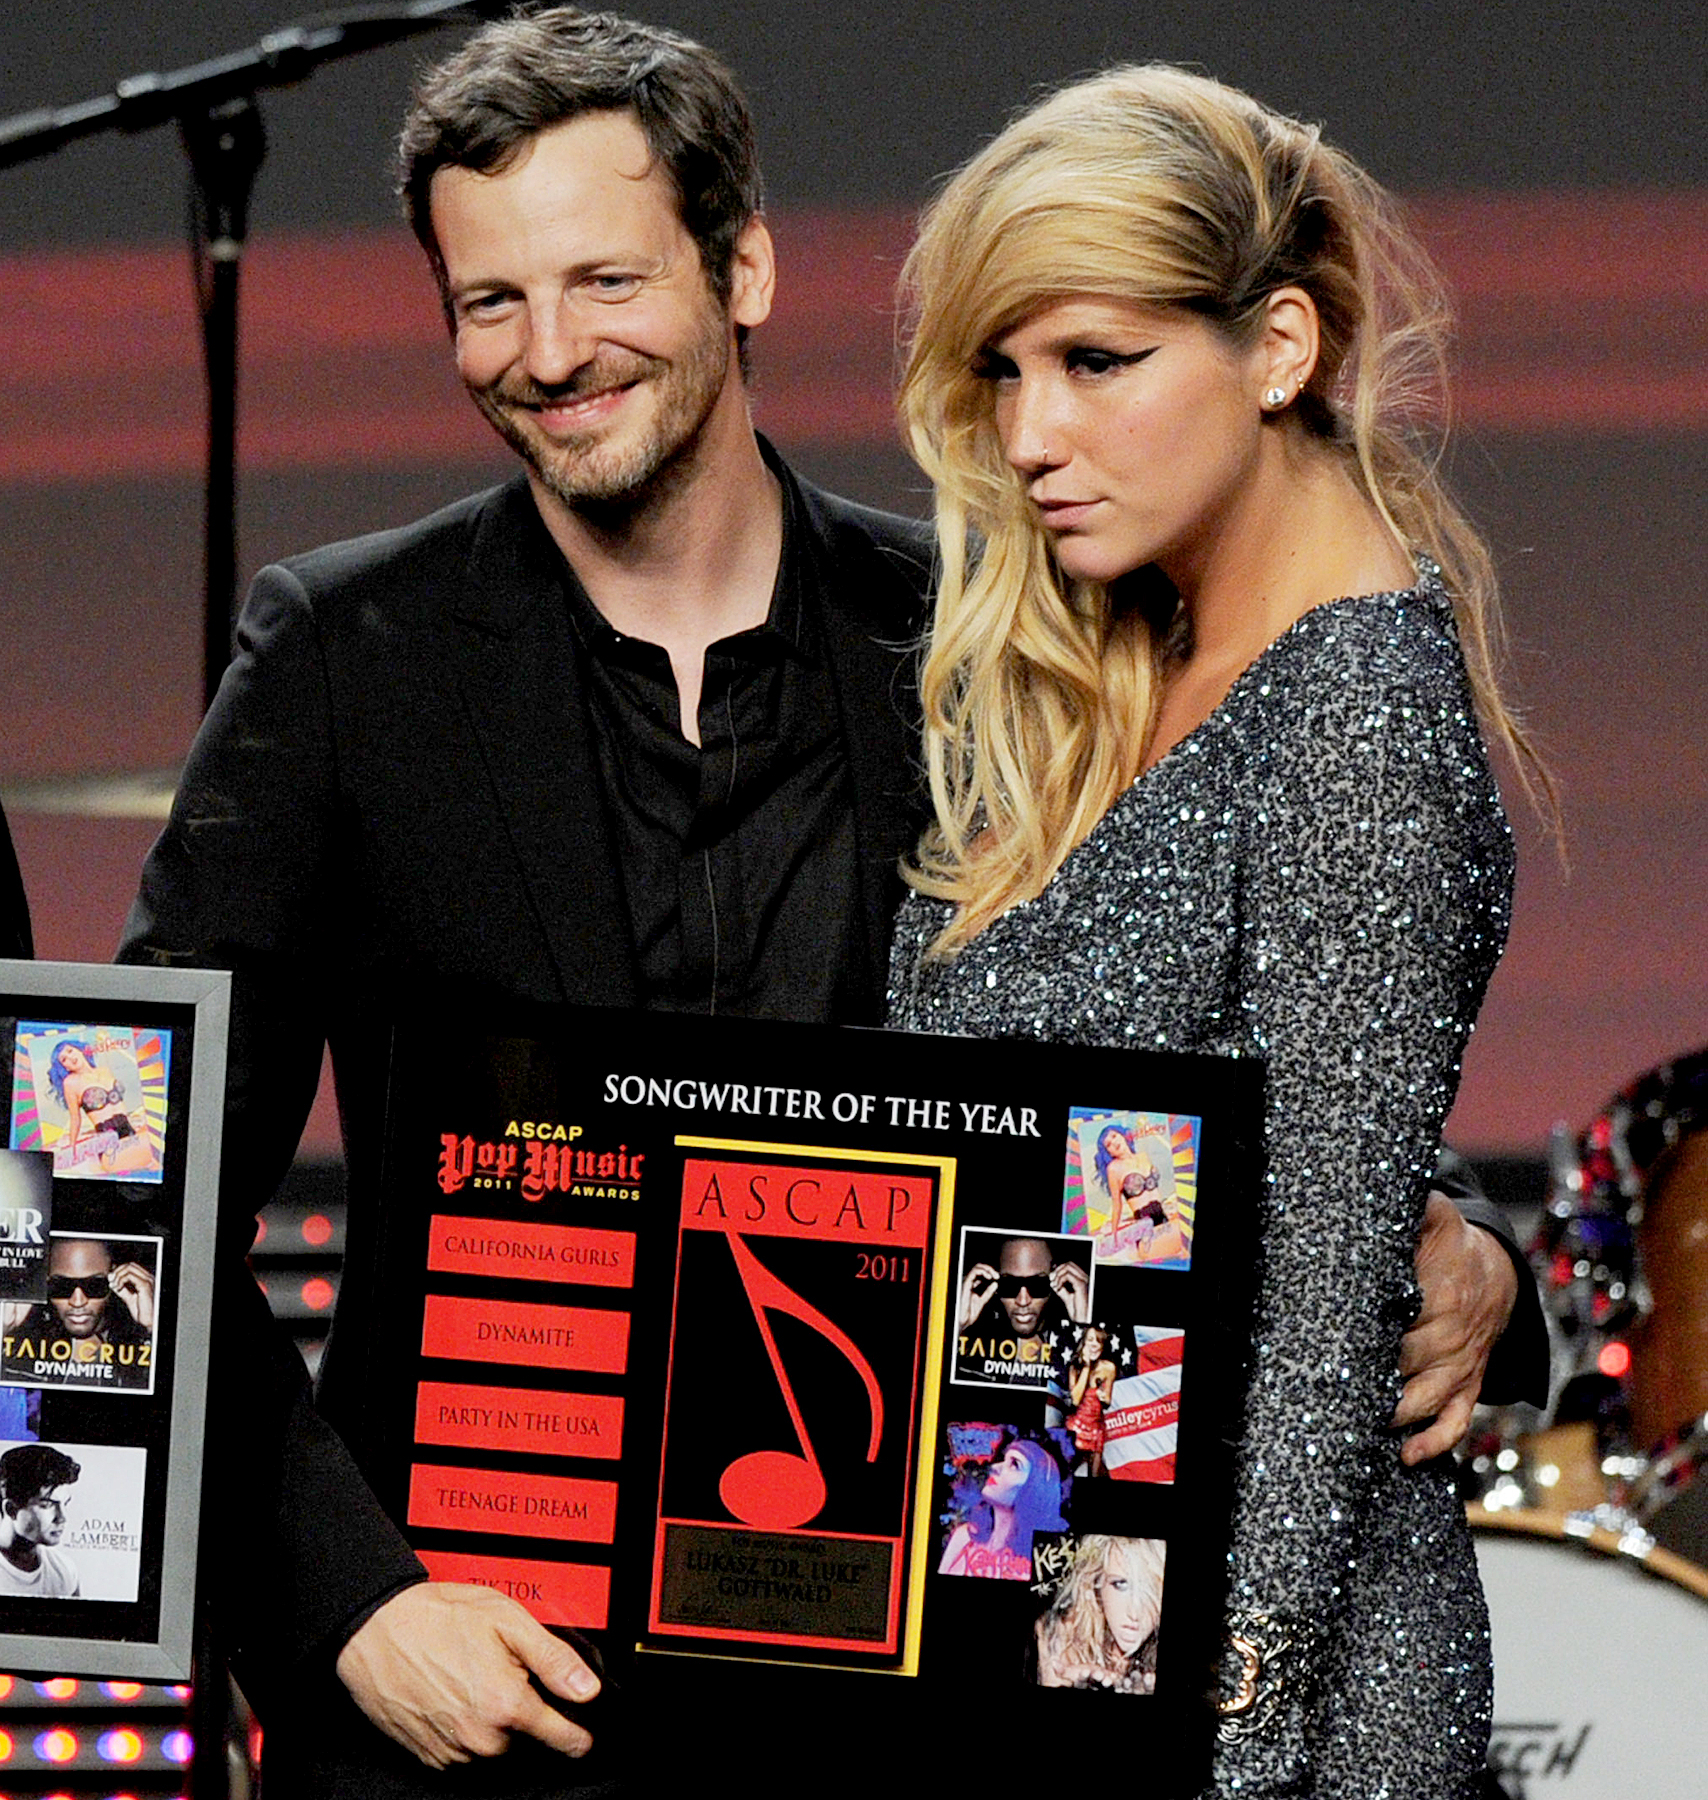 Dr. Luke Gottwald and Ke$ha pose onstage at the 28th Annual ASCAP Pop Music Awards at the Kodak Ballroom on April 27, 2011 in Los Angeles, California.